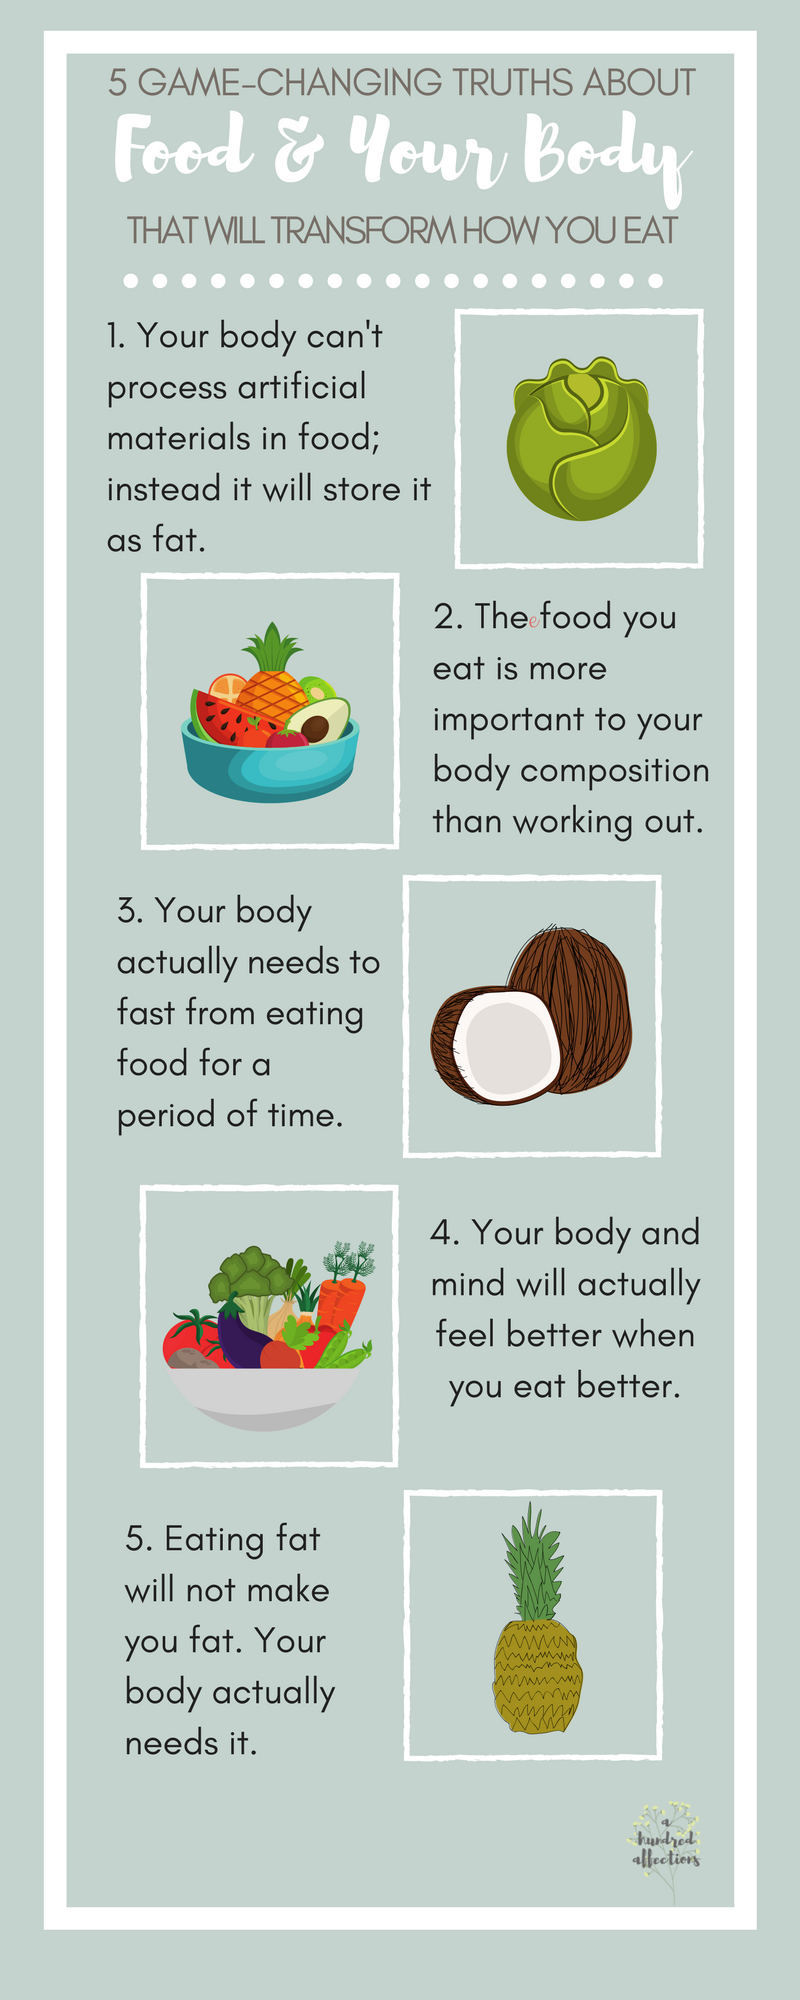 5 game changing truths about food and your body that will transform how you eat